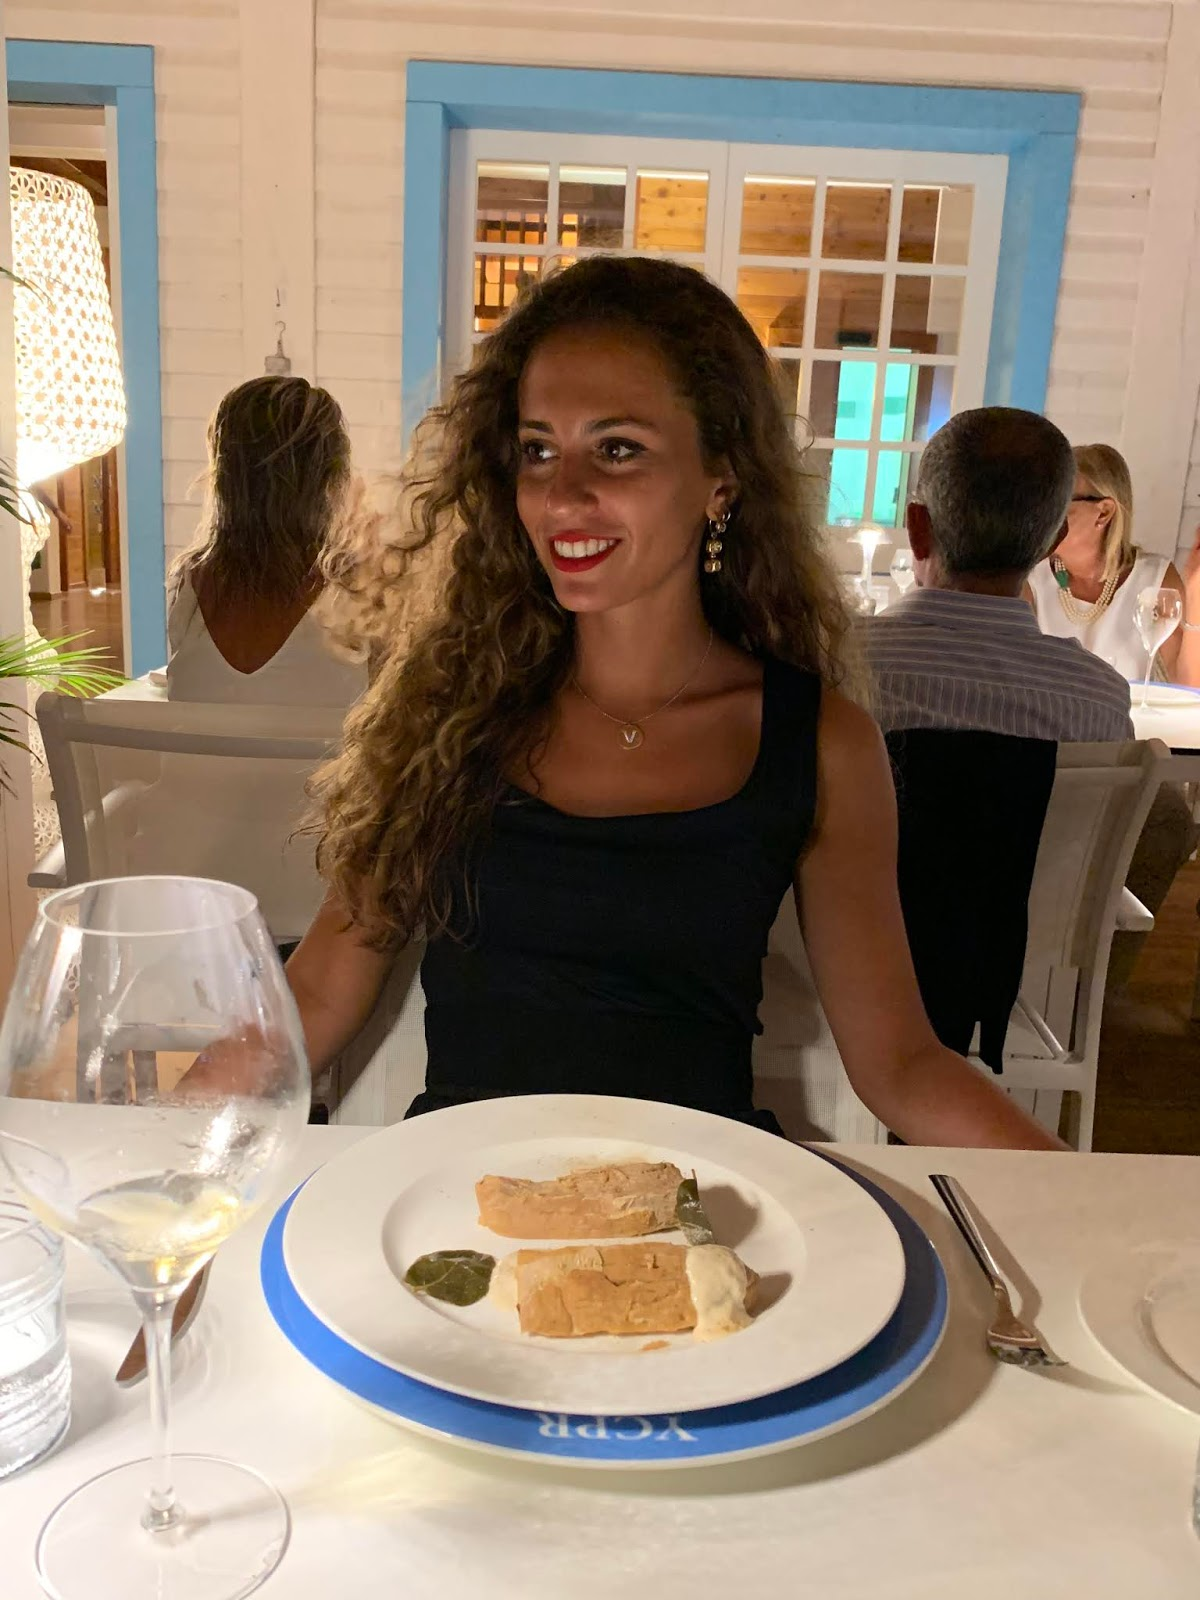 porto rotondo on top: una cena indimenticabile allo yacht club, porto rotondo on top, Valentina Rago, fashion need